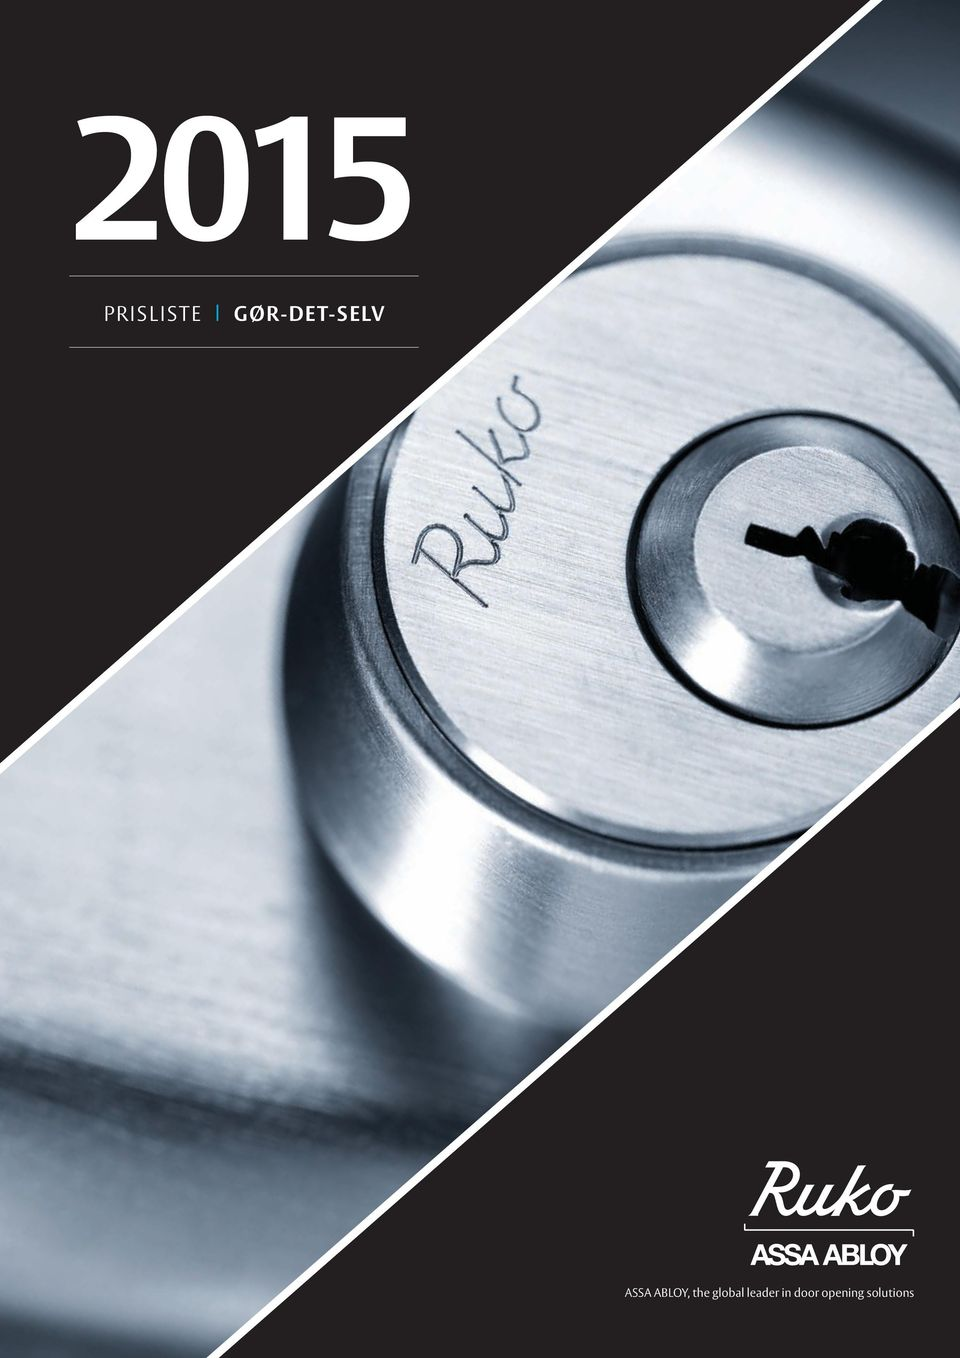 ABLOY, the global